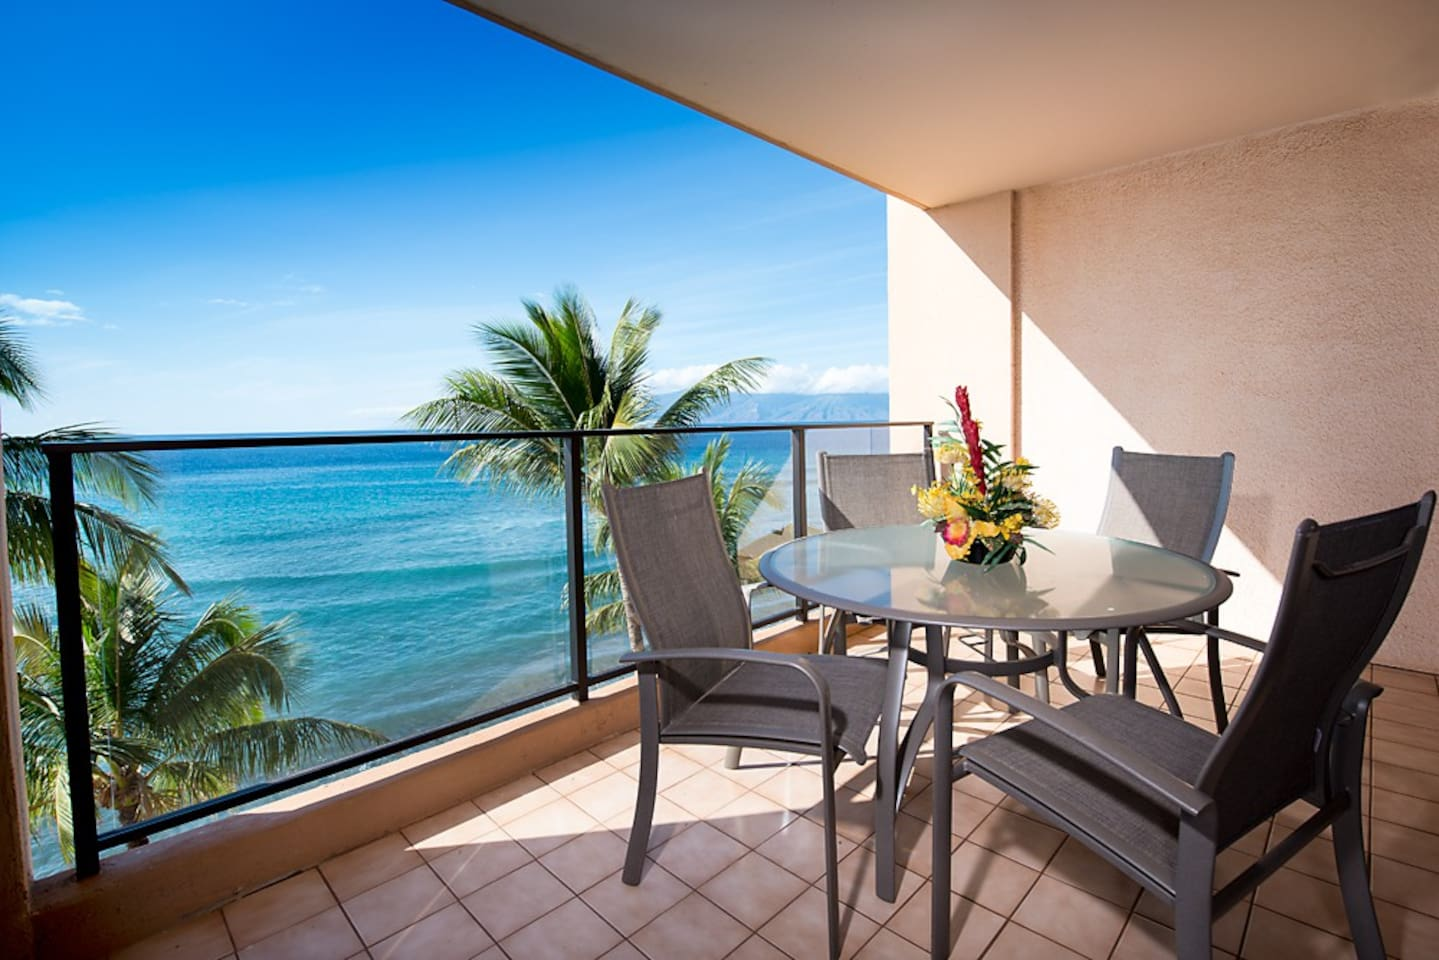 Suite 717 private lanai, view of the island of Molaki and island of Lanai along with gorgeous nightly sunsets.